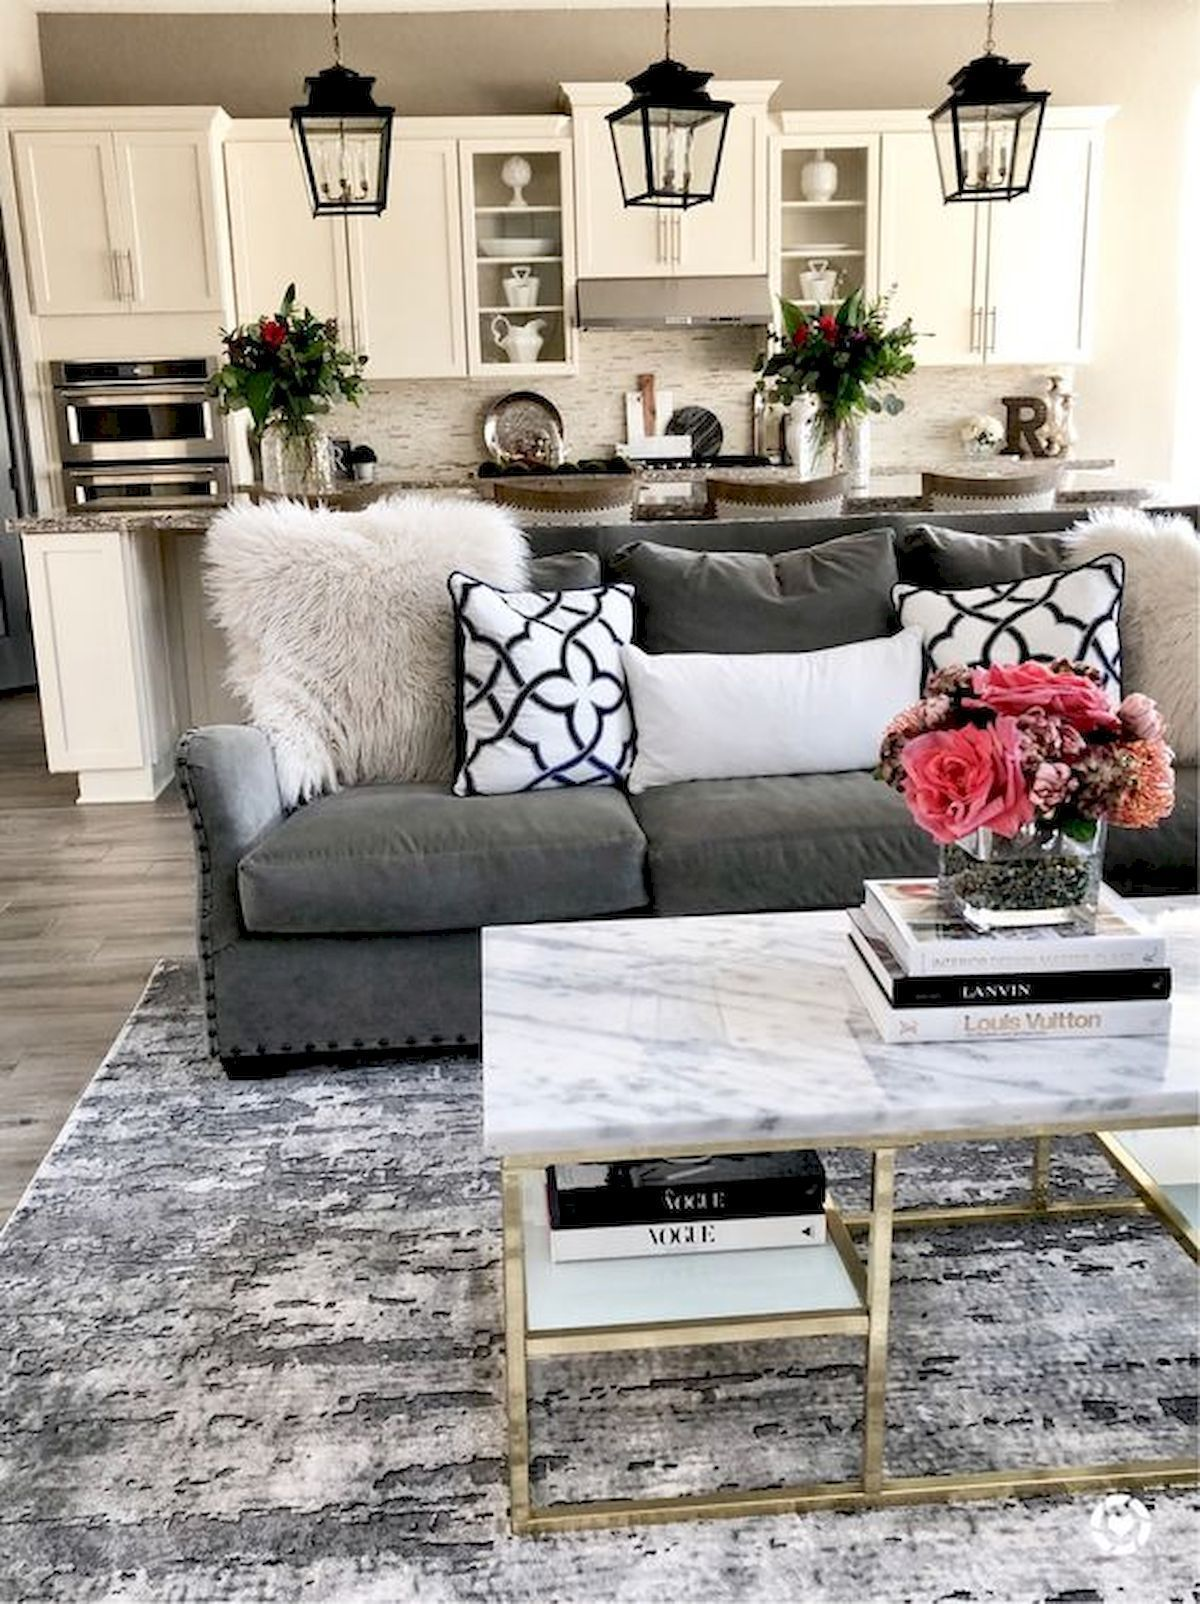 Fantastic Images Modern Farmhouse Rugs Strategies Country Chic Living S Come Quite A Dista In 2021 Living Room Sofa Design Farm House Living Room Apartment Living Room